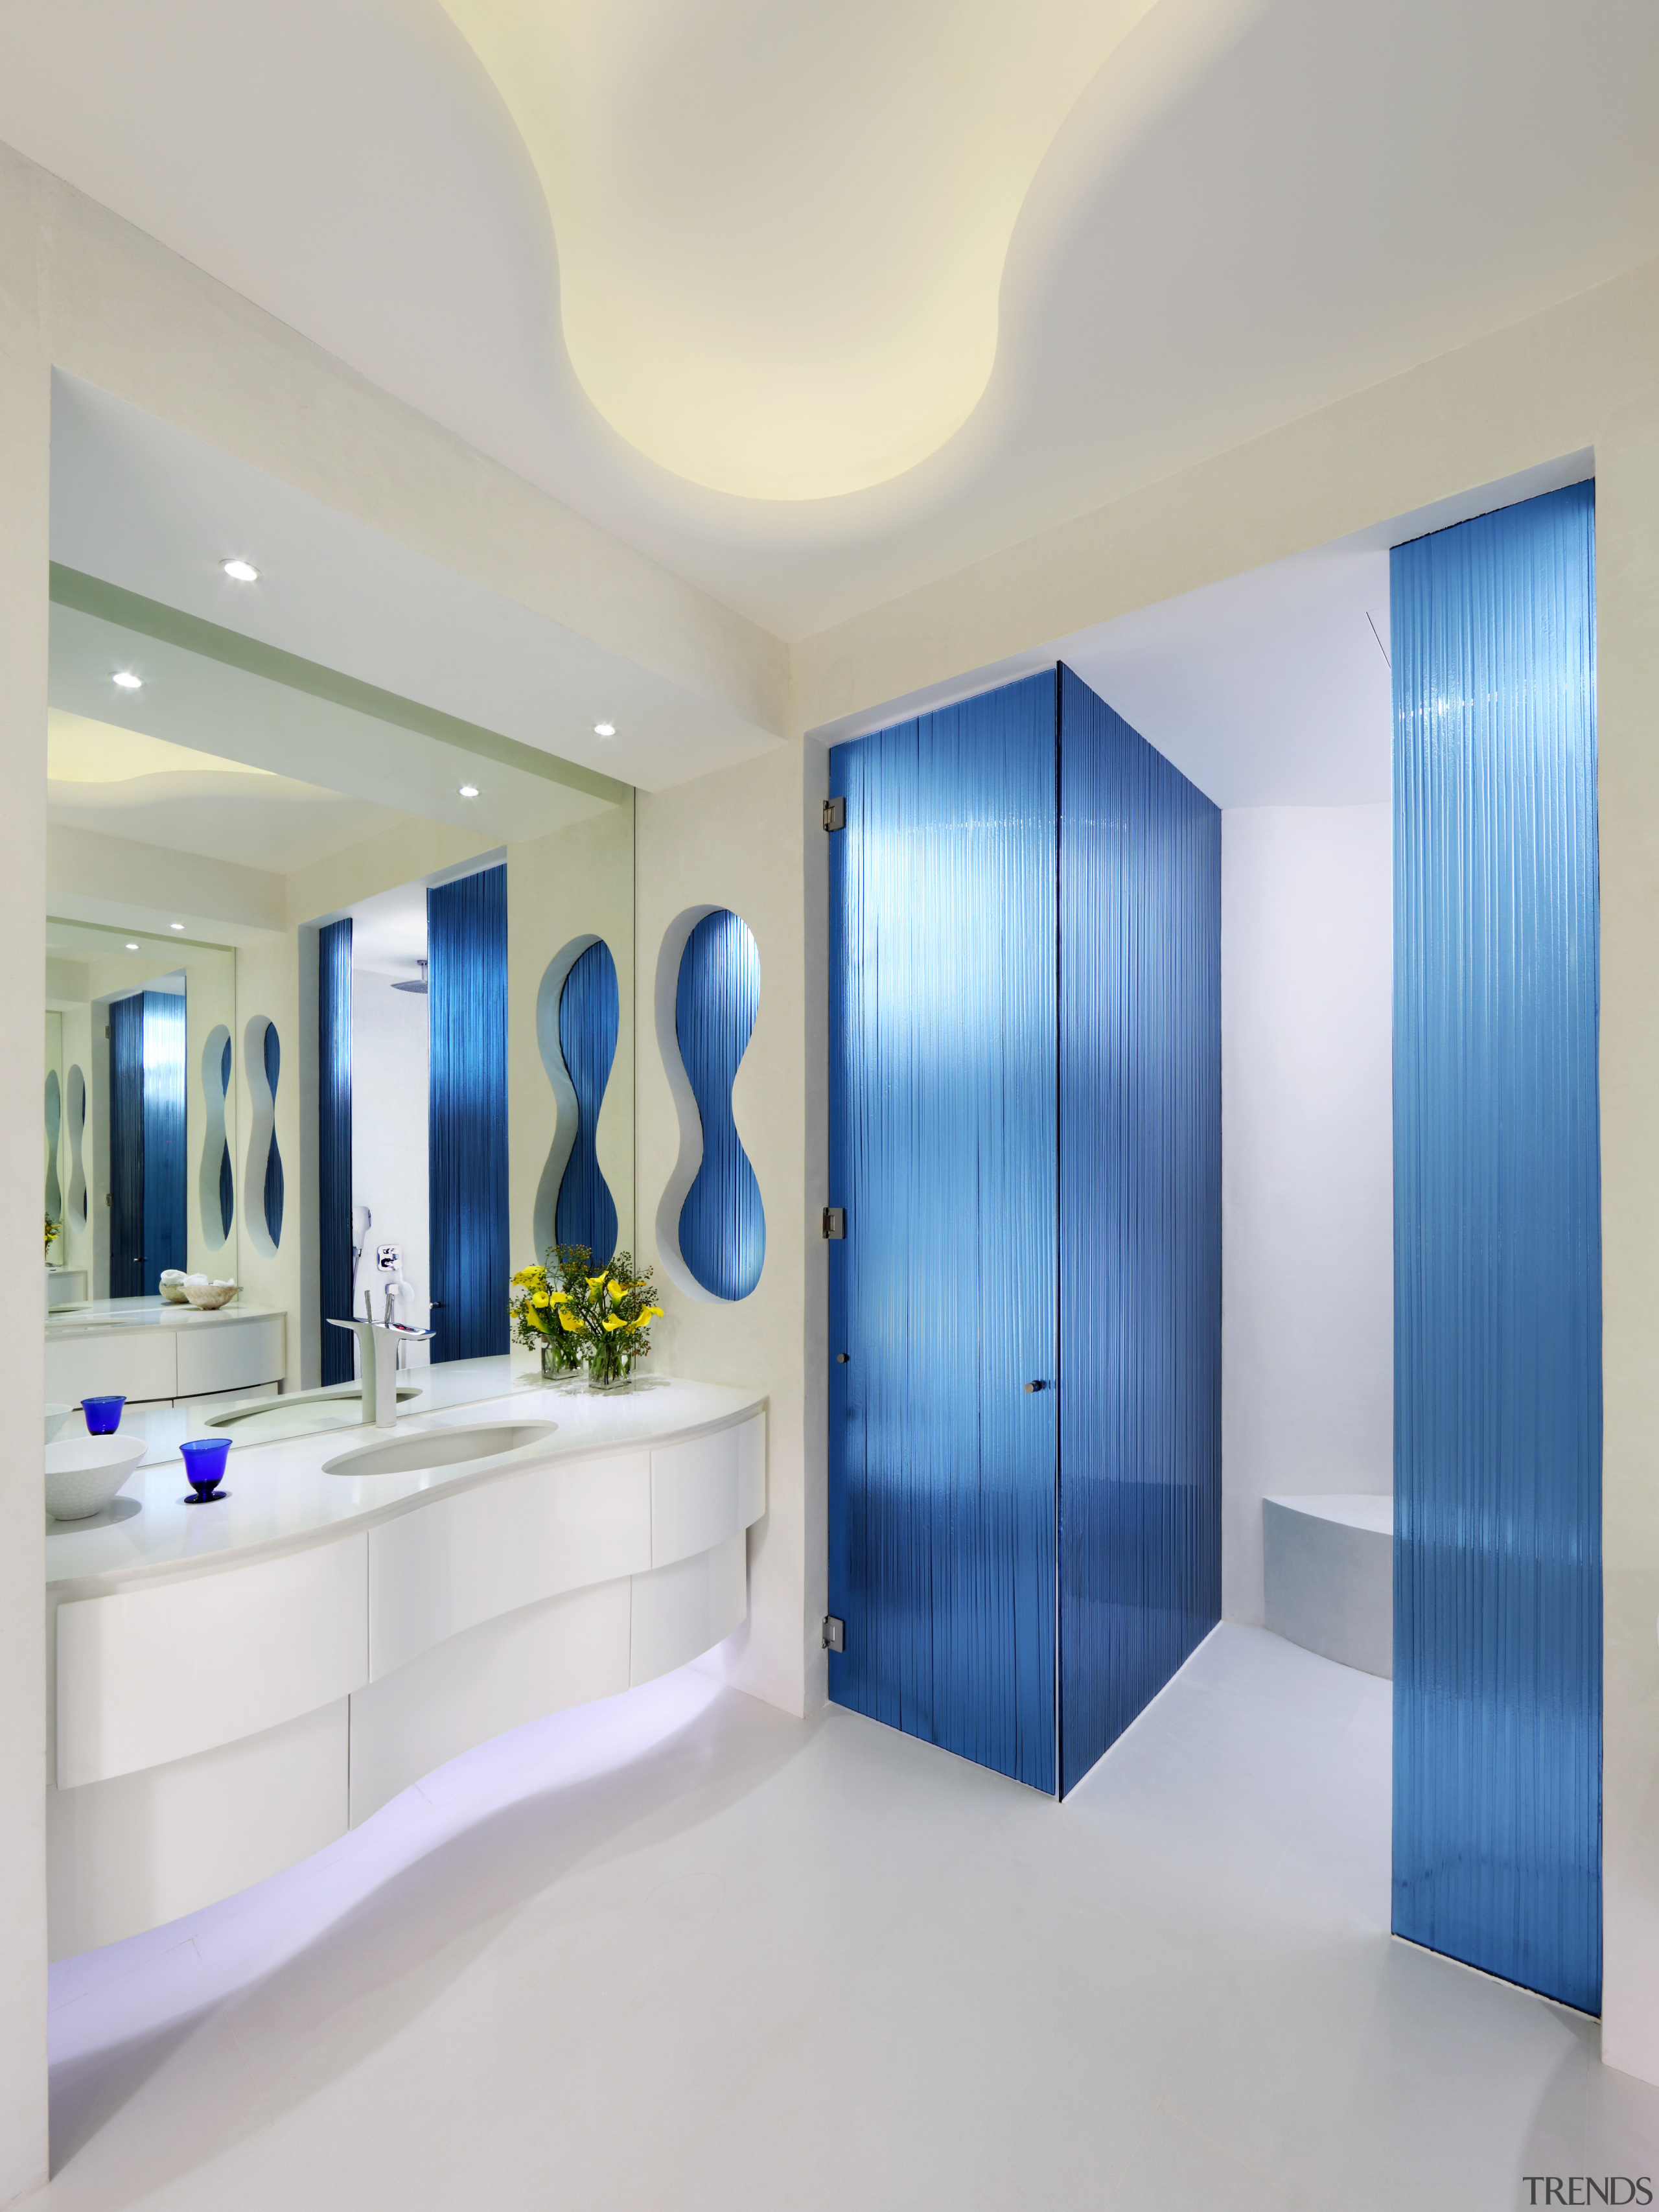 As a one-off space, this master ensuite has ceiling, interior design, real estate, gray